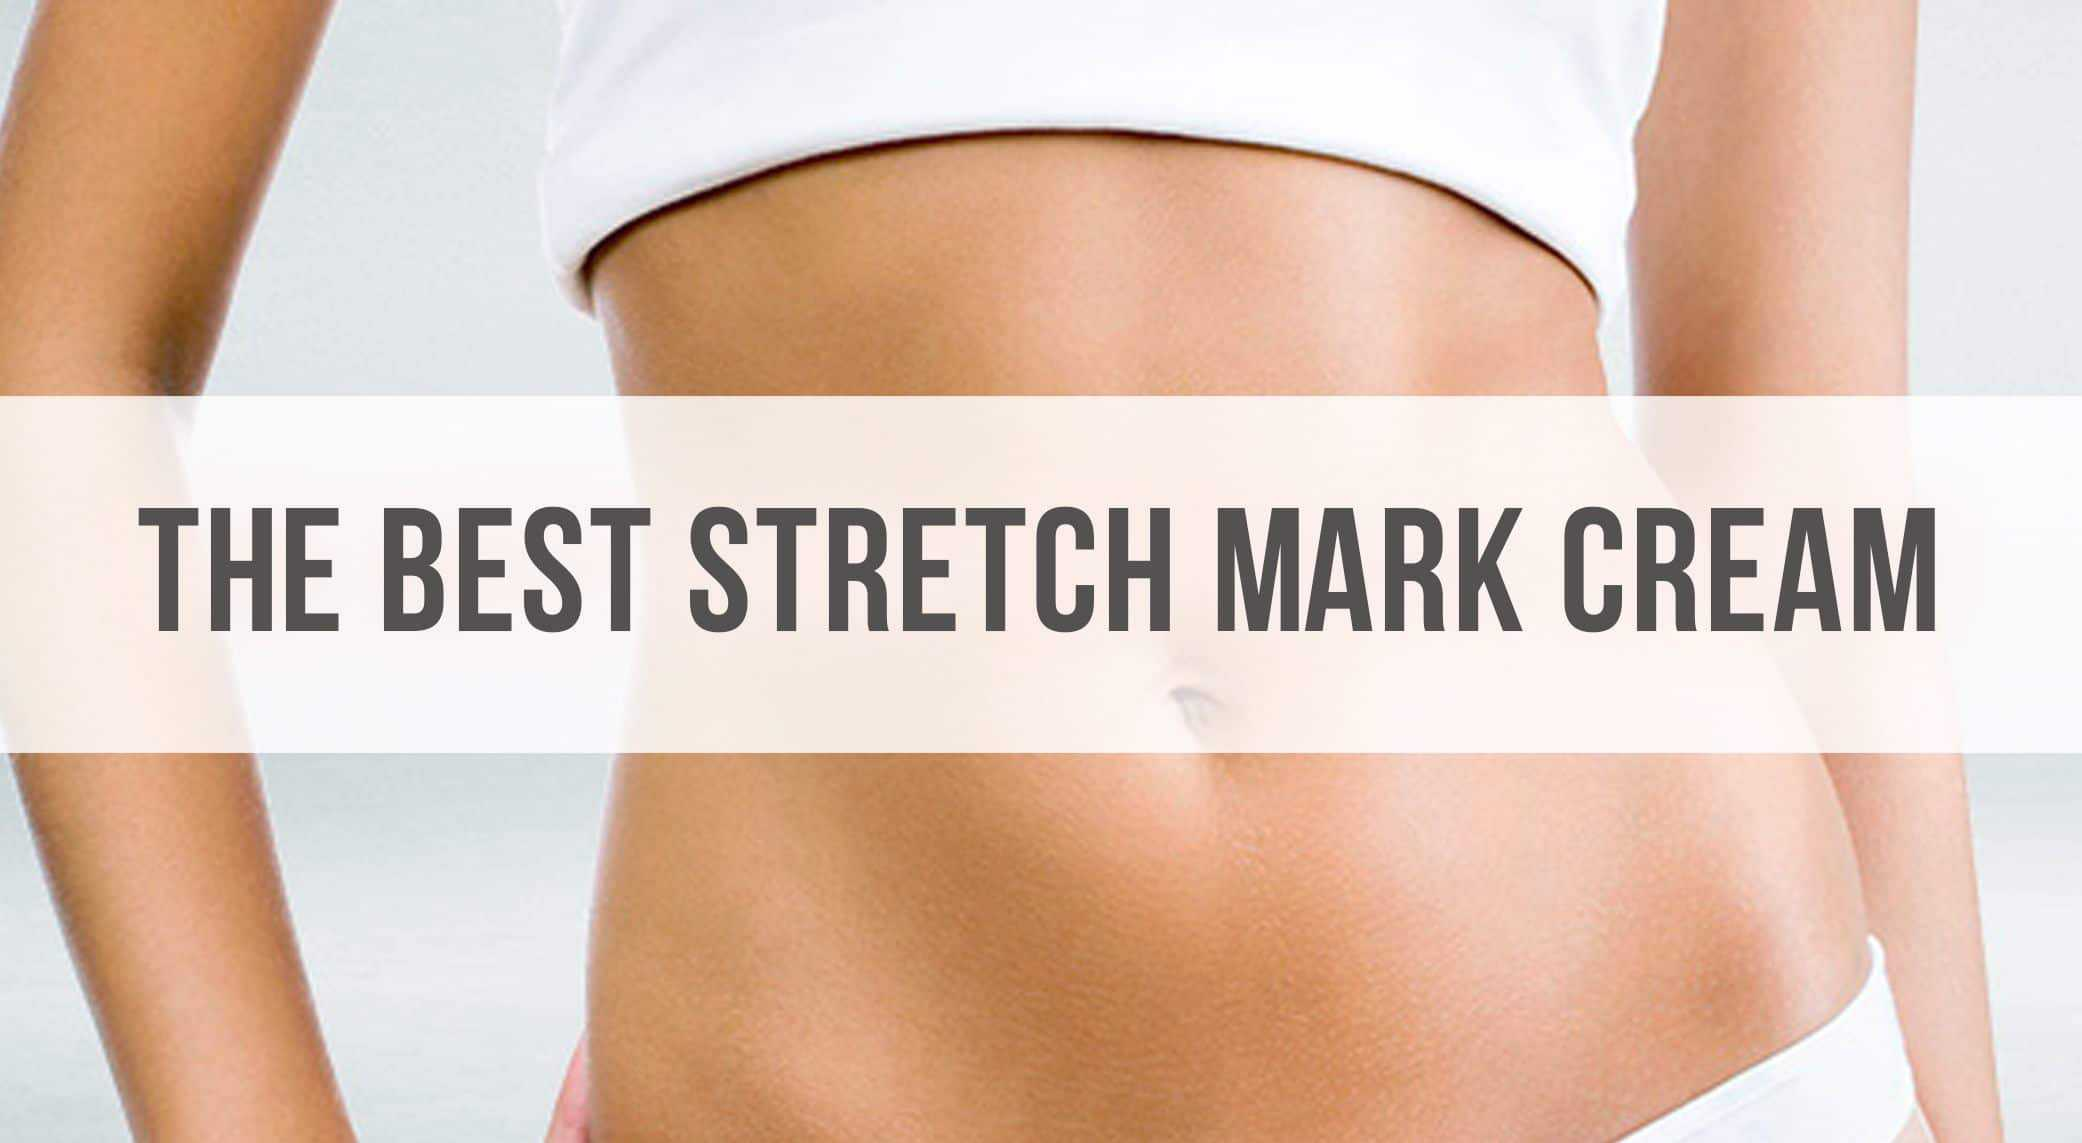 Best Stretch Mark Cream August 2020 Reviews And Top Picks